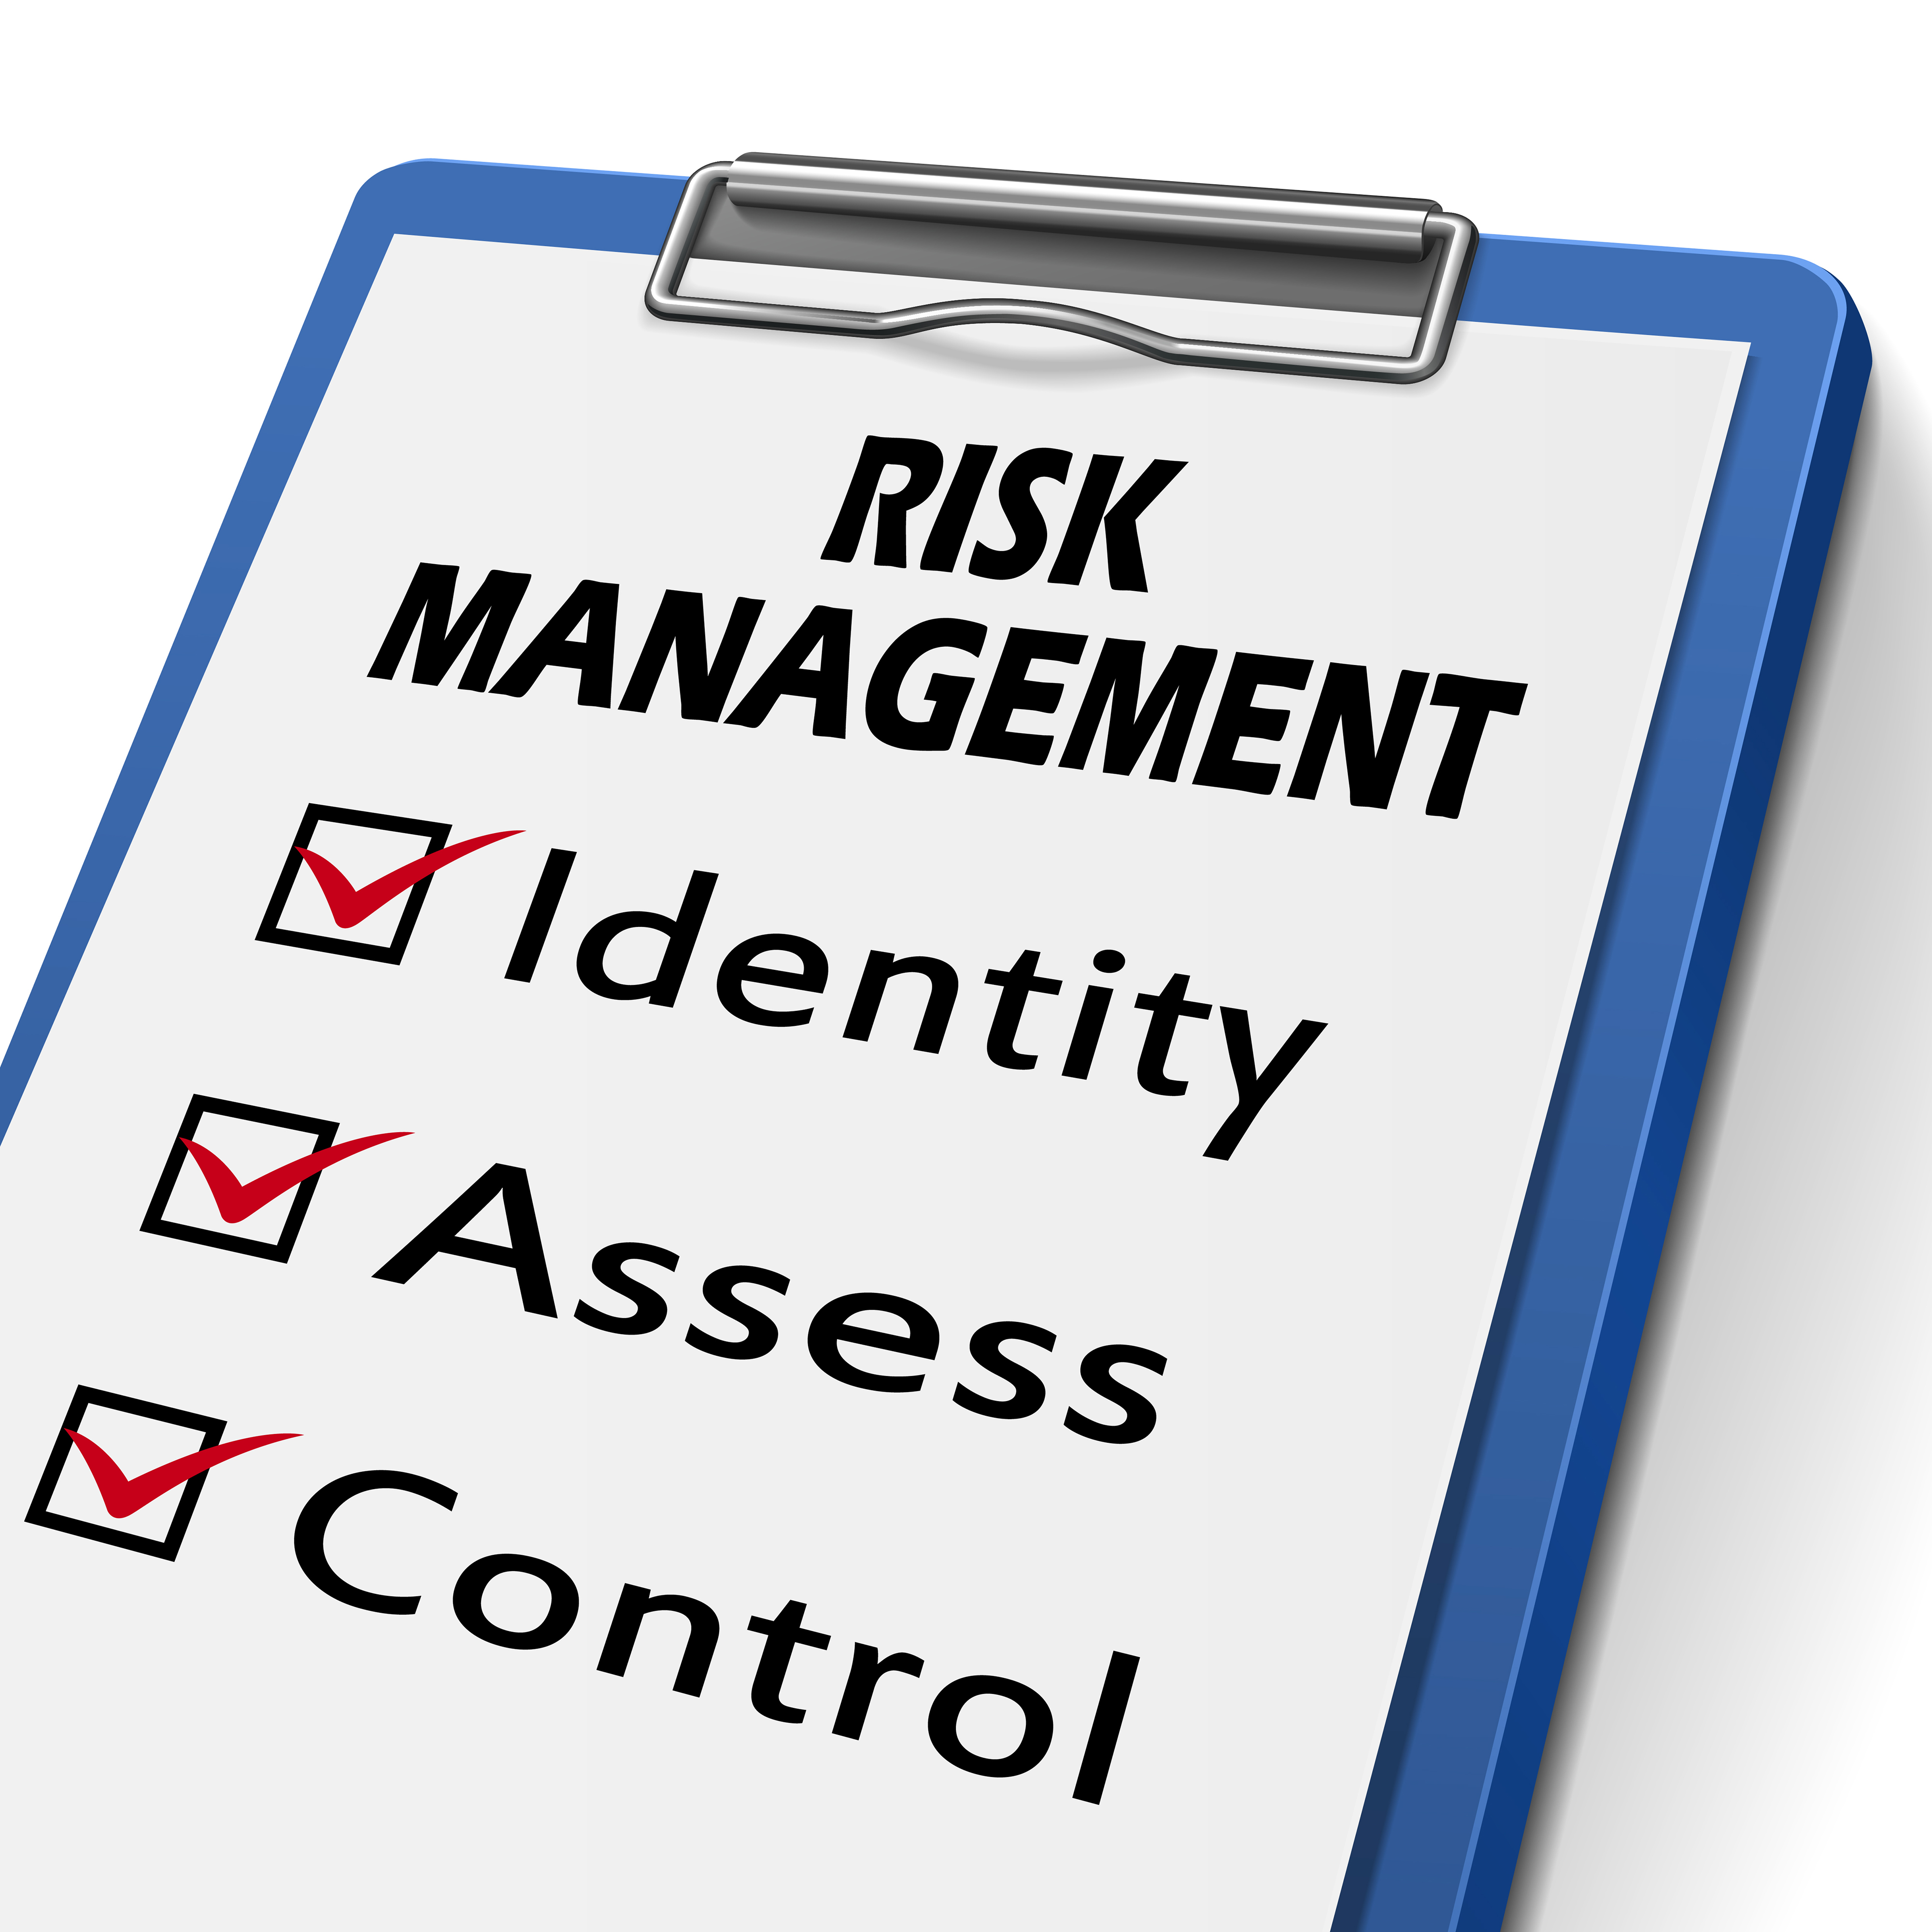 Best practices for reducing. Assessment clipart risk assessment